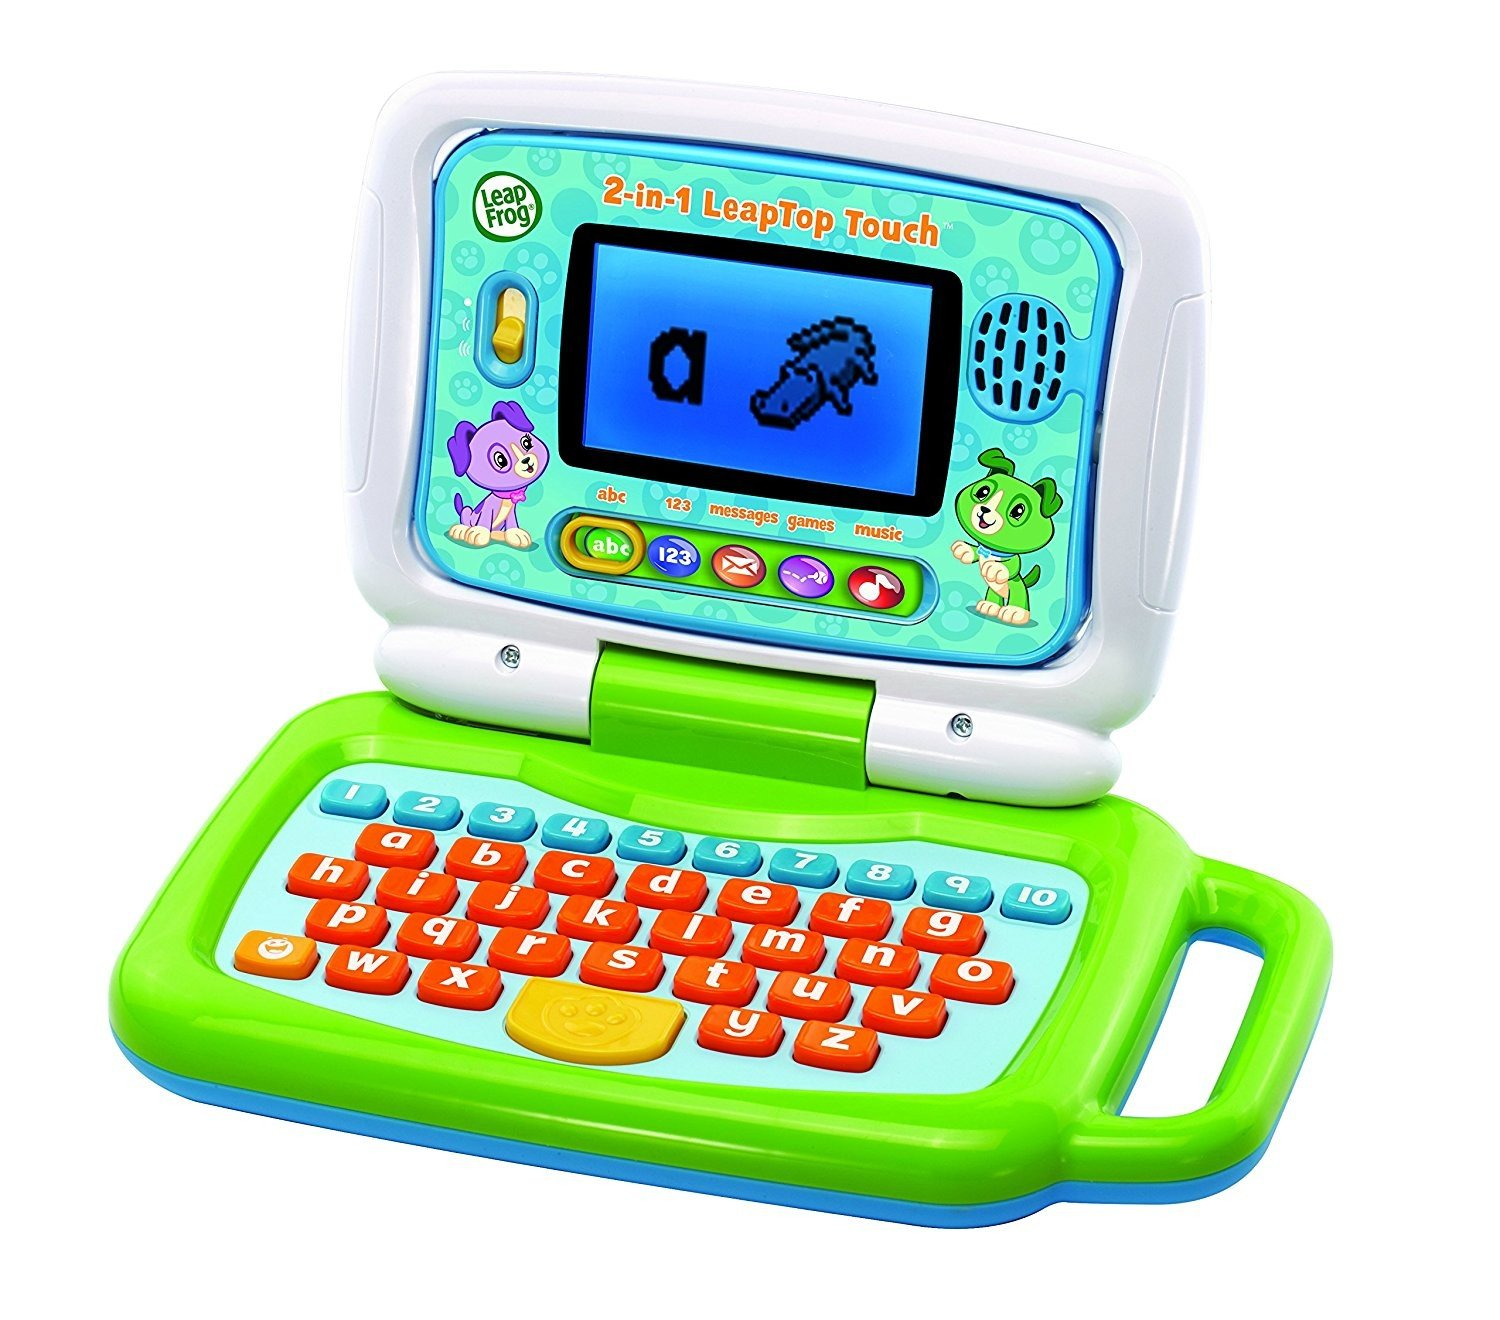 LeapFrog ''2 in 1 Leap Top Touch Toy, Green